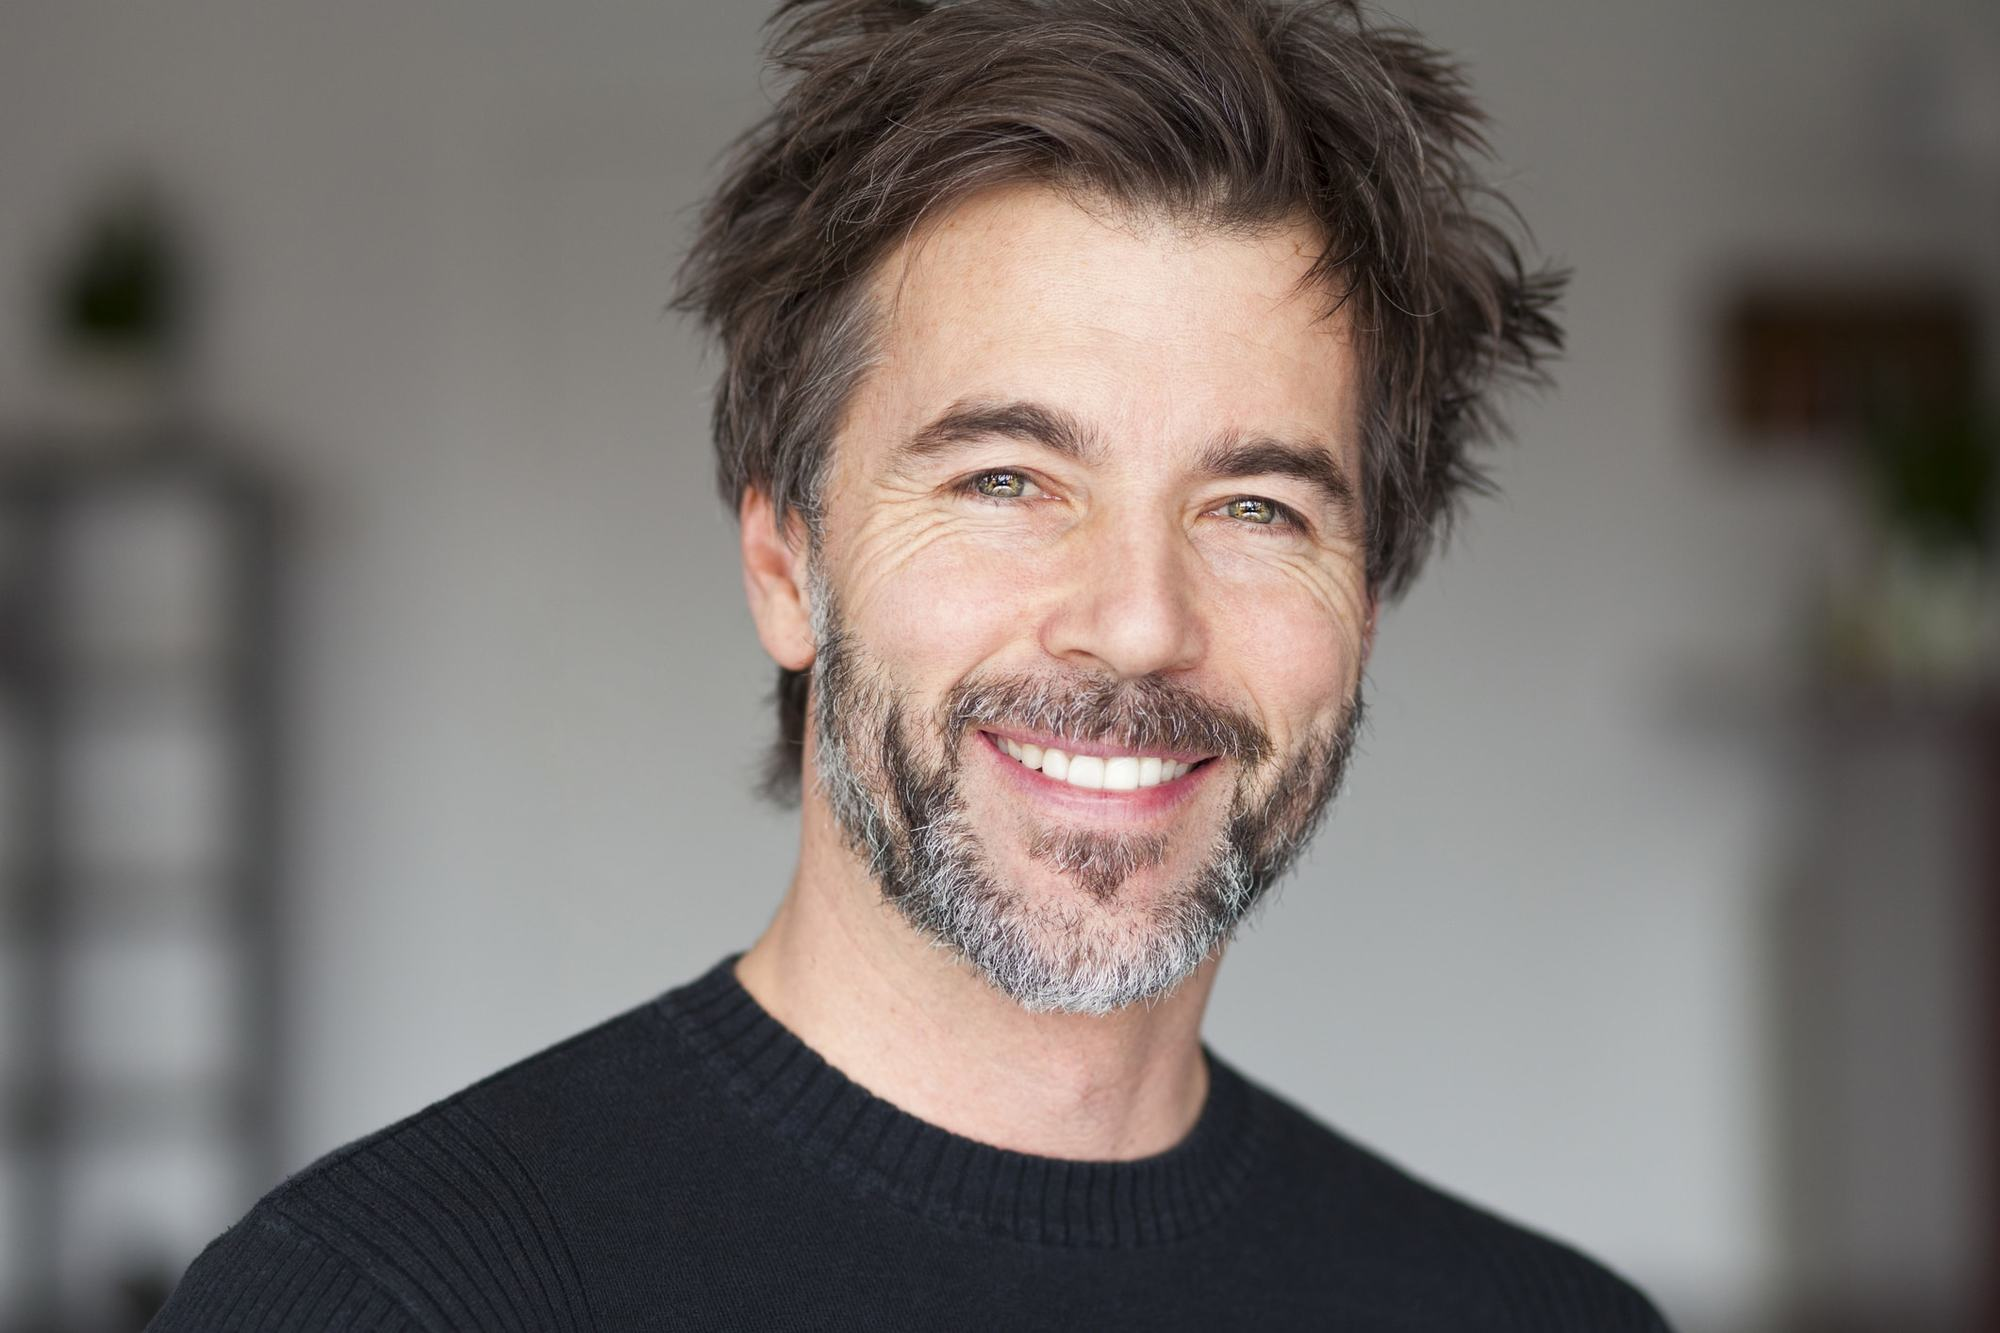 Hairstyles for Men Over 40: 15 Timeless Looks to Consider